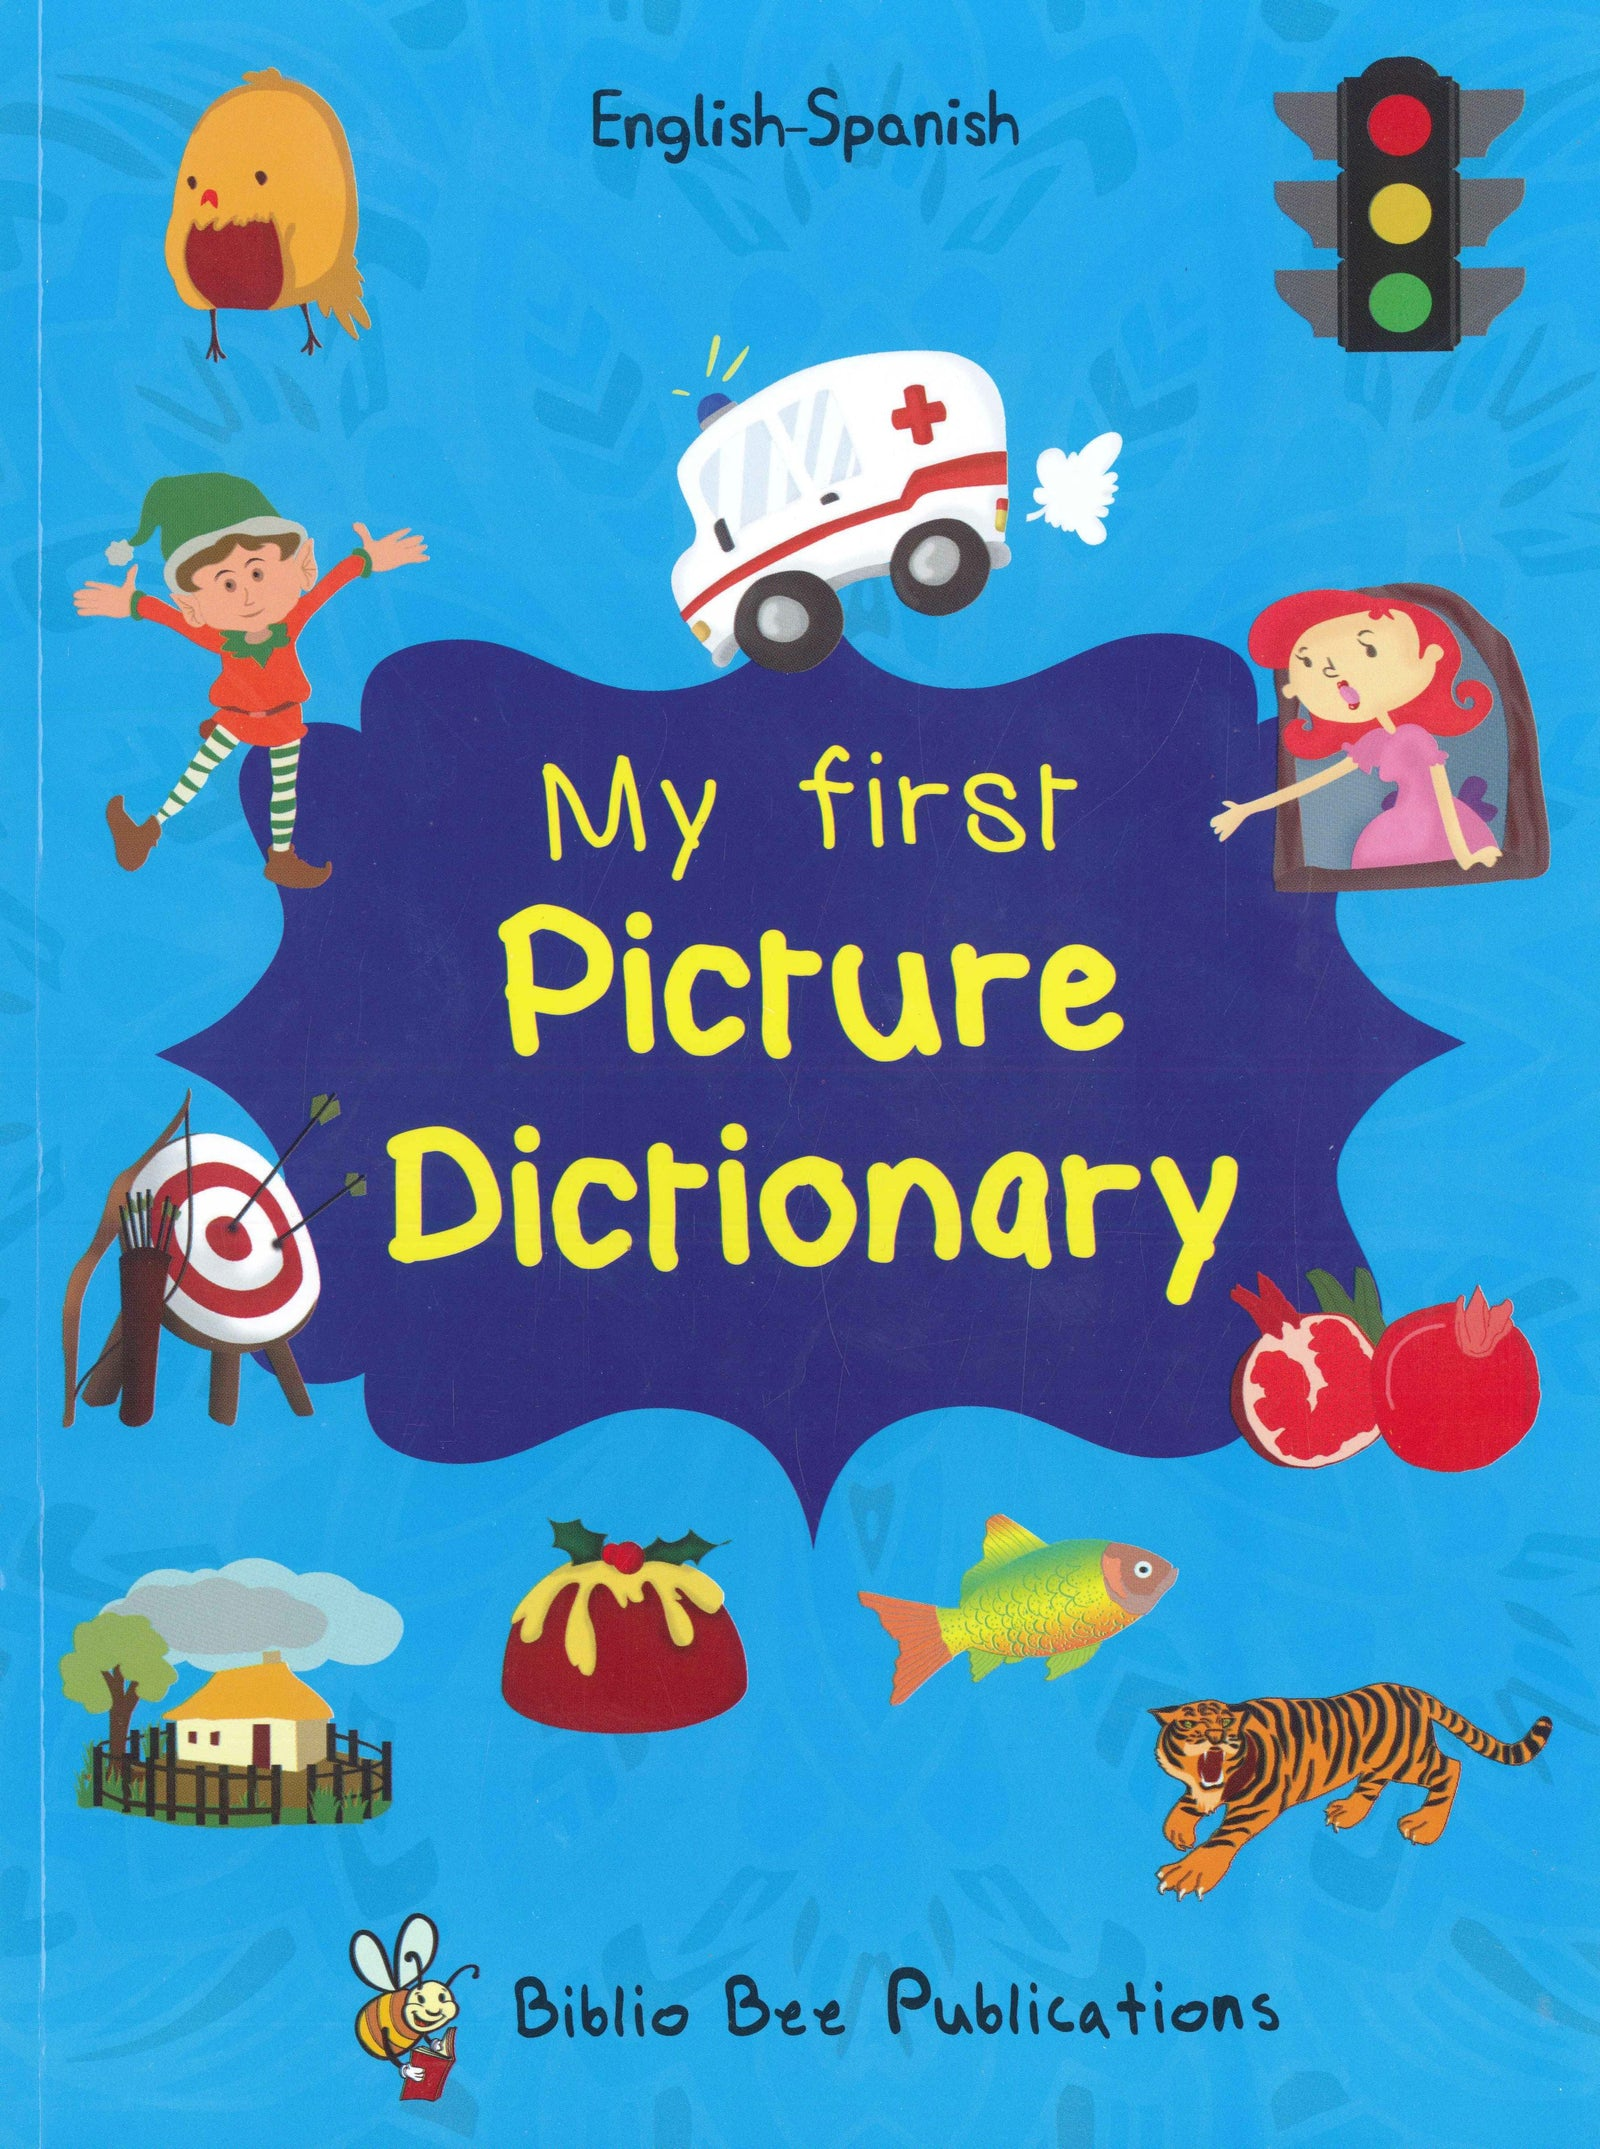 My First Picture Dictionary: English-Spanish 9781908357731 - front cover